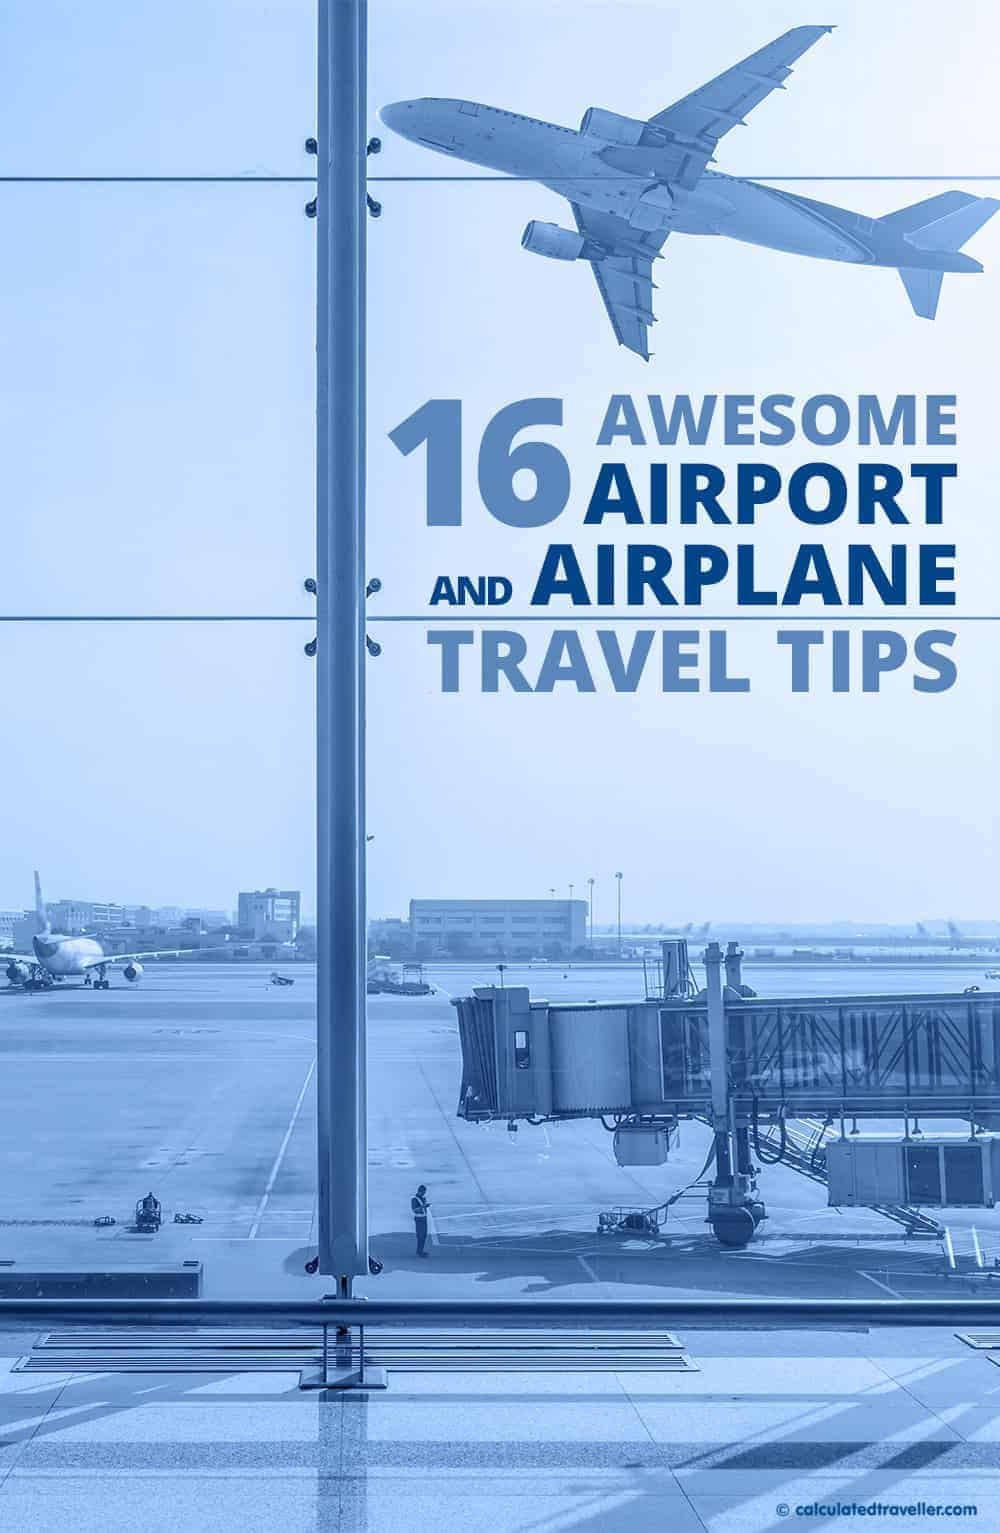 16 Awesome Airport and Airplane Travel Tips | TRAVEL | TIP | PLANE | AIRPLANE | AIRPORT